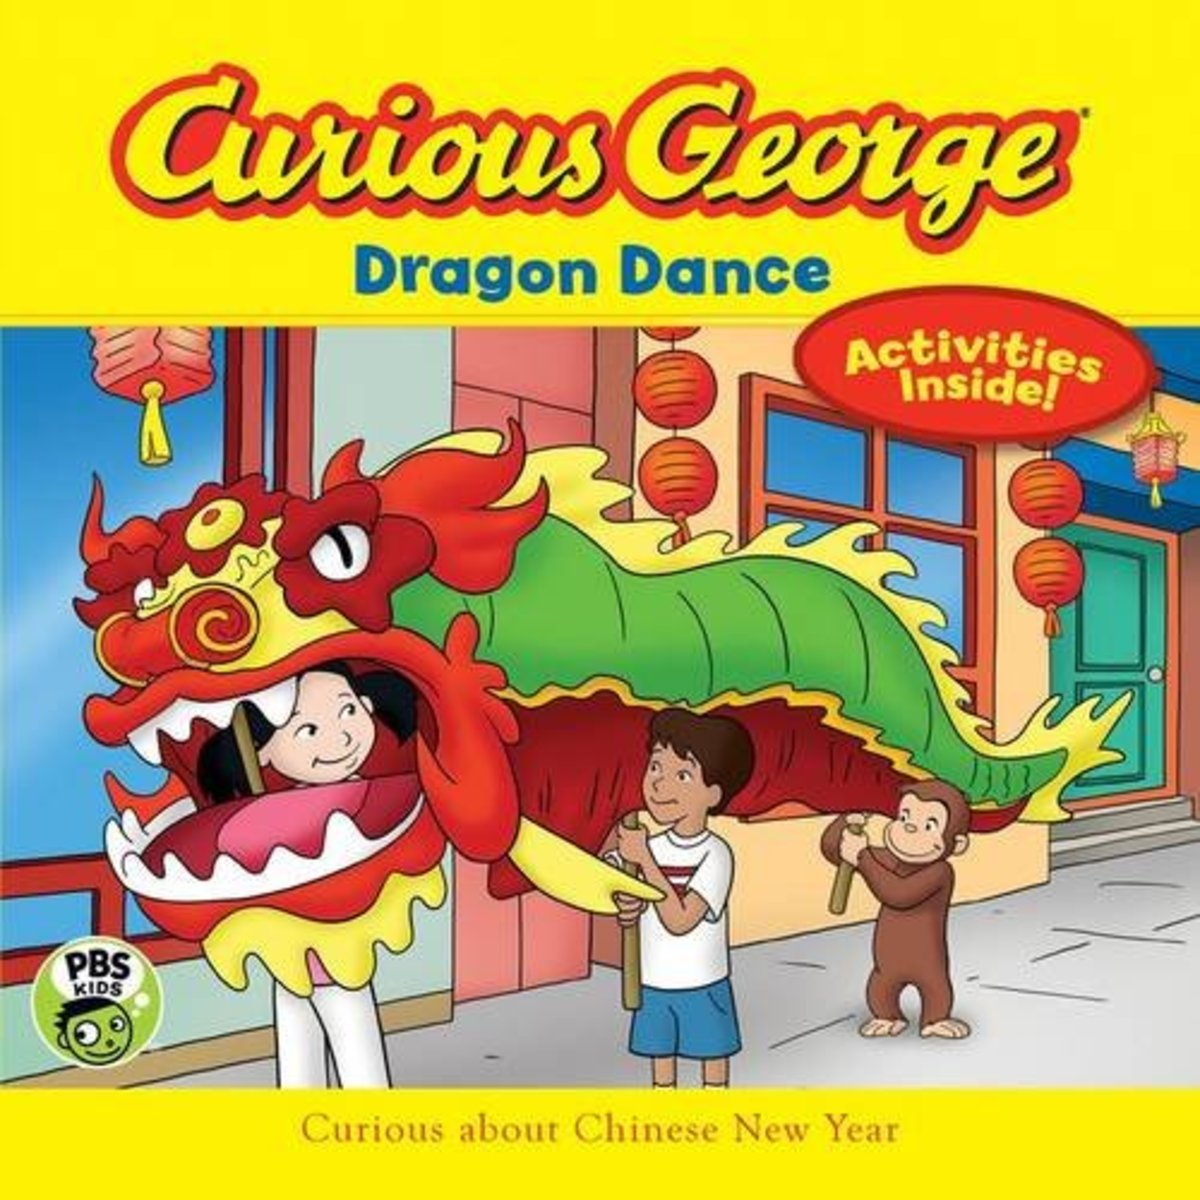 Curious George Dragon Dance, adapted by Adah Nuchi